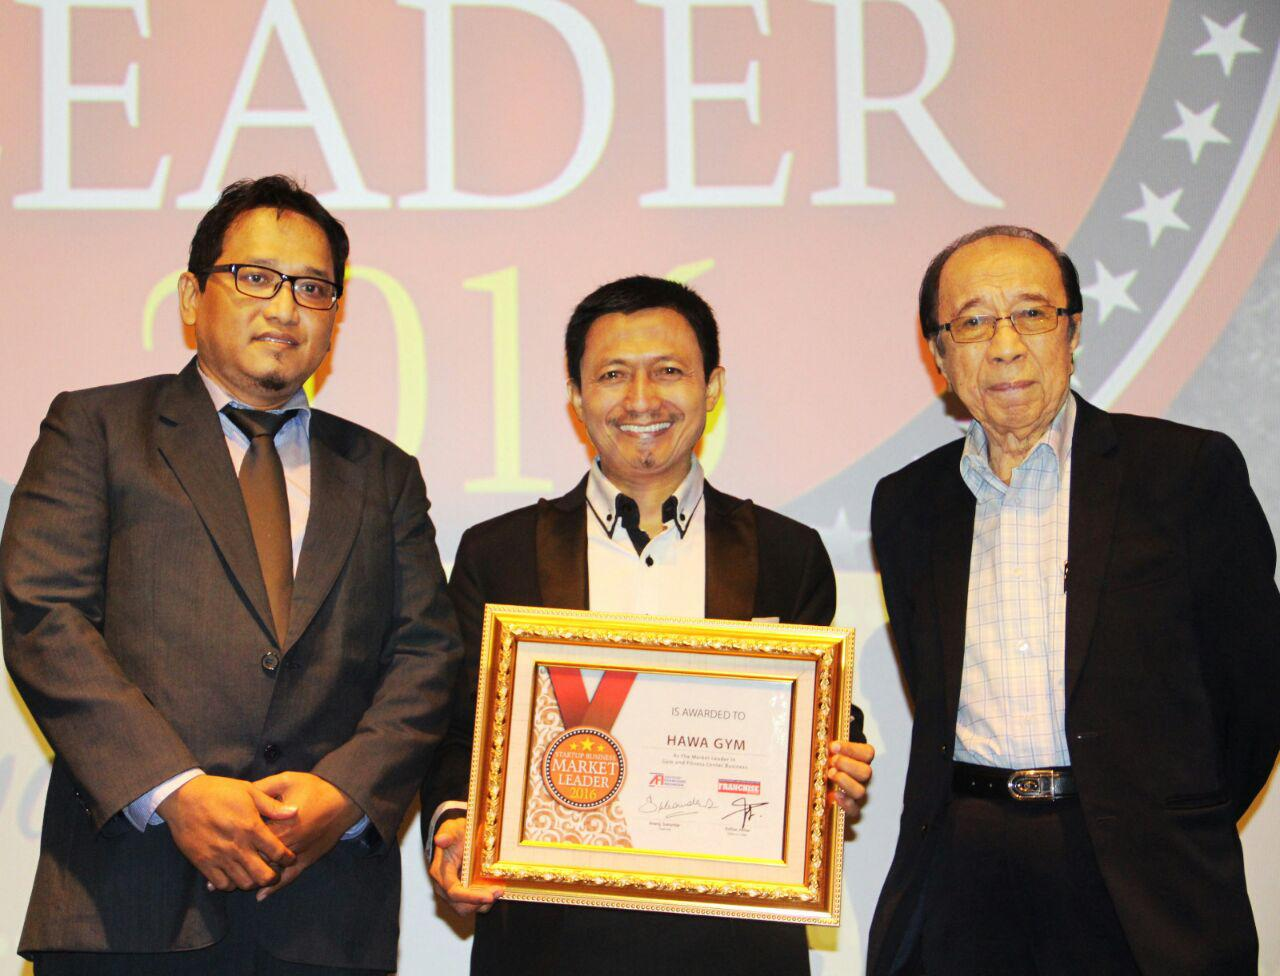 market-leader-award